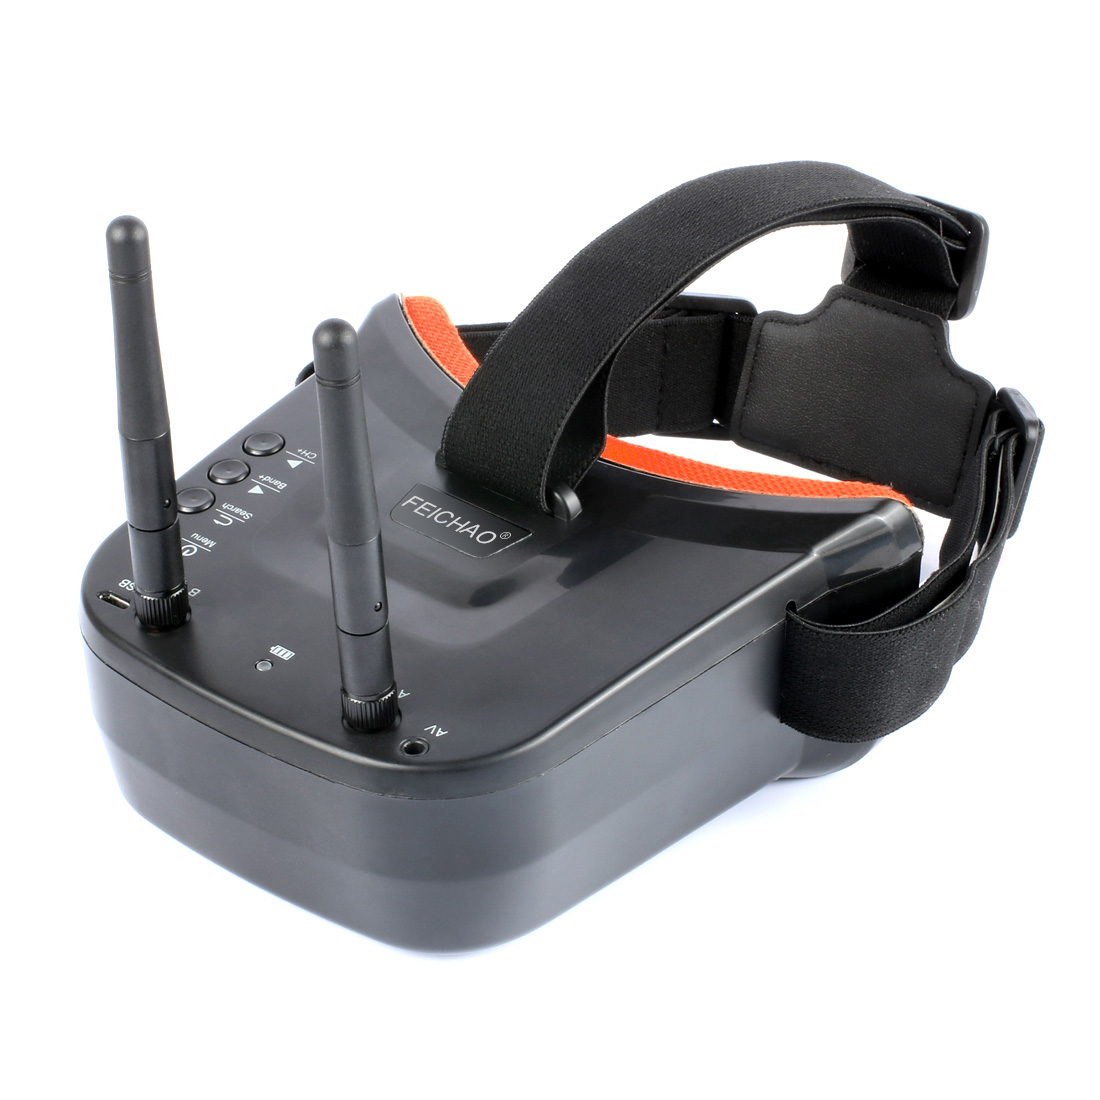 New Mini FPV Goggles 3 inch 480 x 320 Display Double Antenna 5.8G 40CH Built-in 3.7V 1200mAh Battery for Racing Drone Models